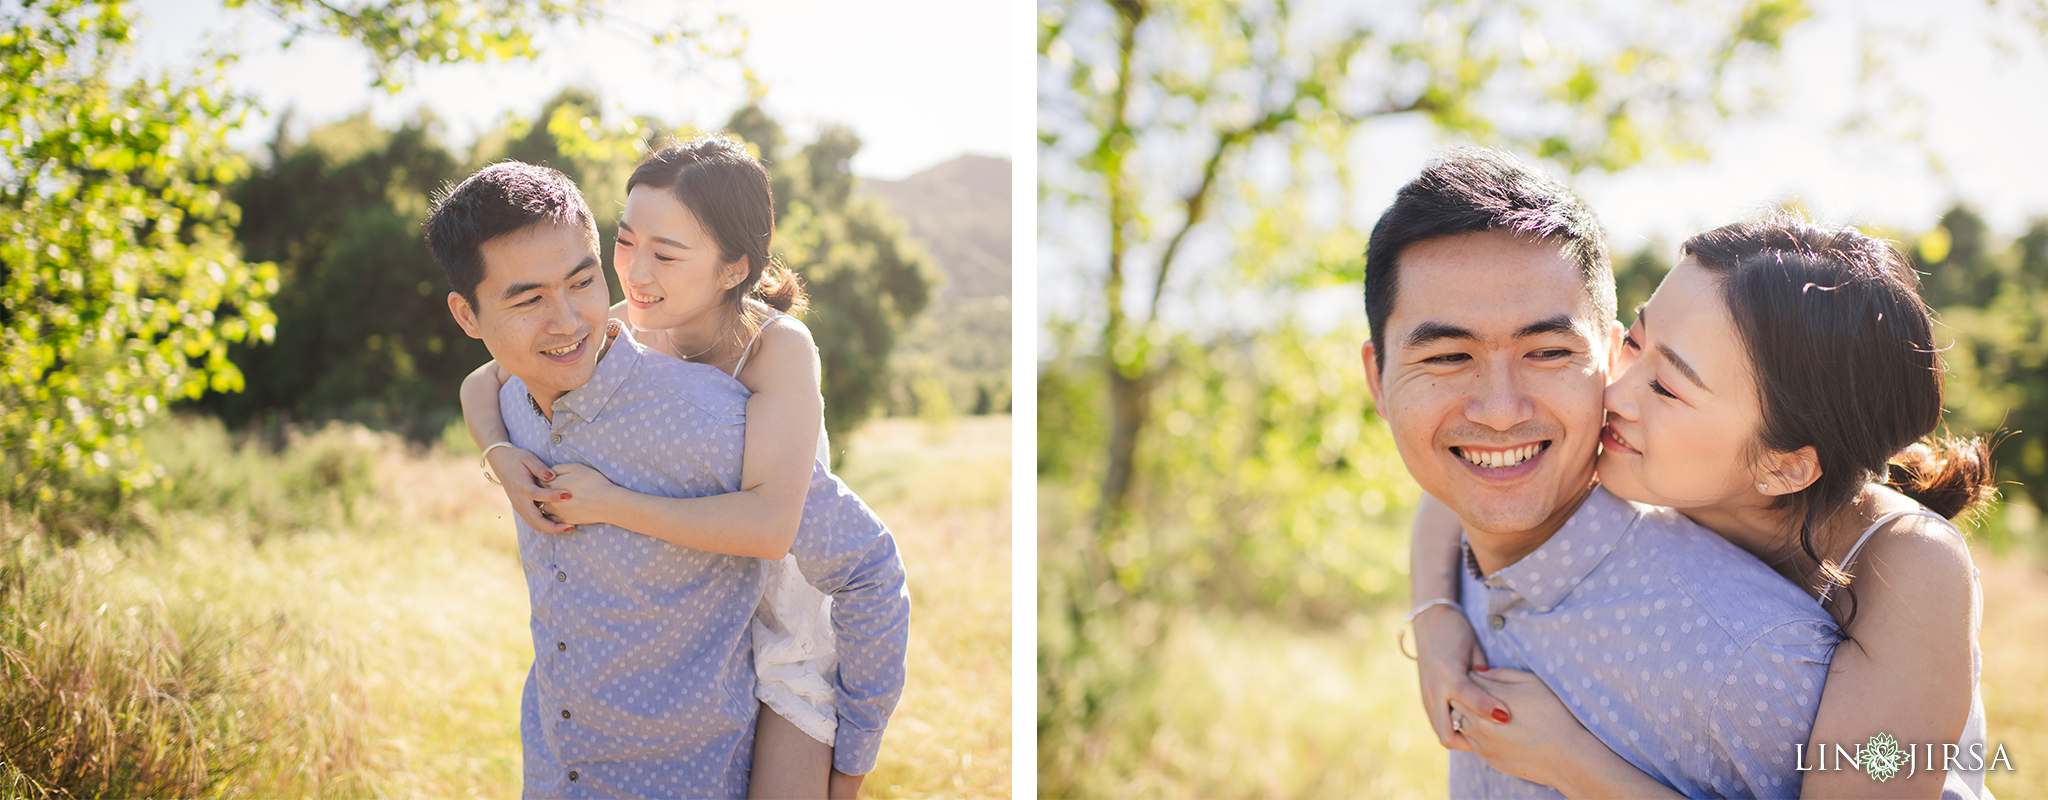 05 James Dilley Orange County Engagement Photography